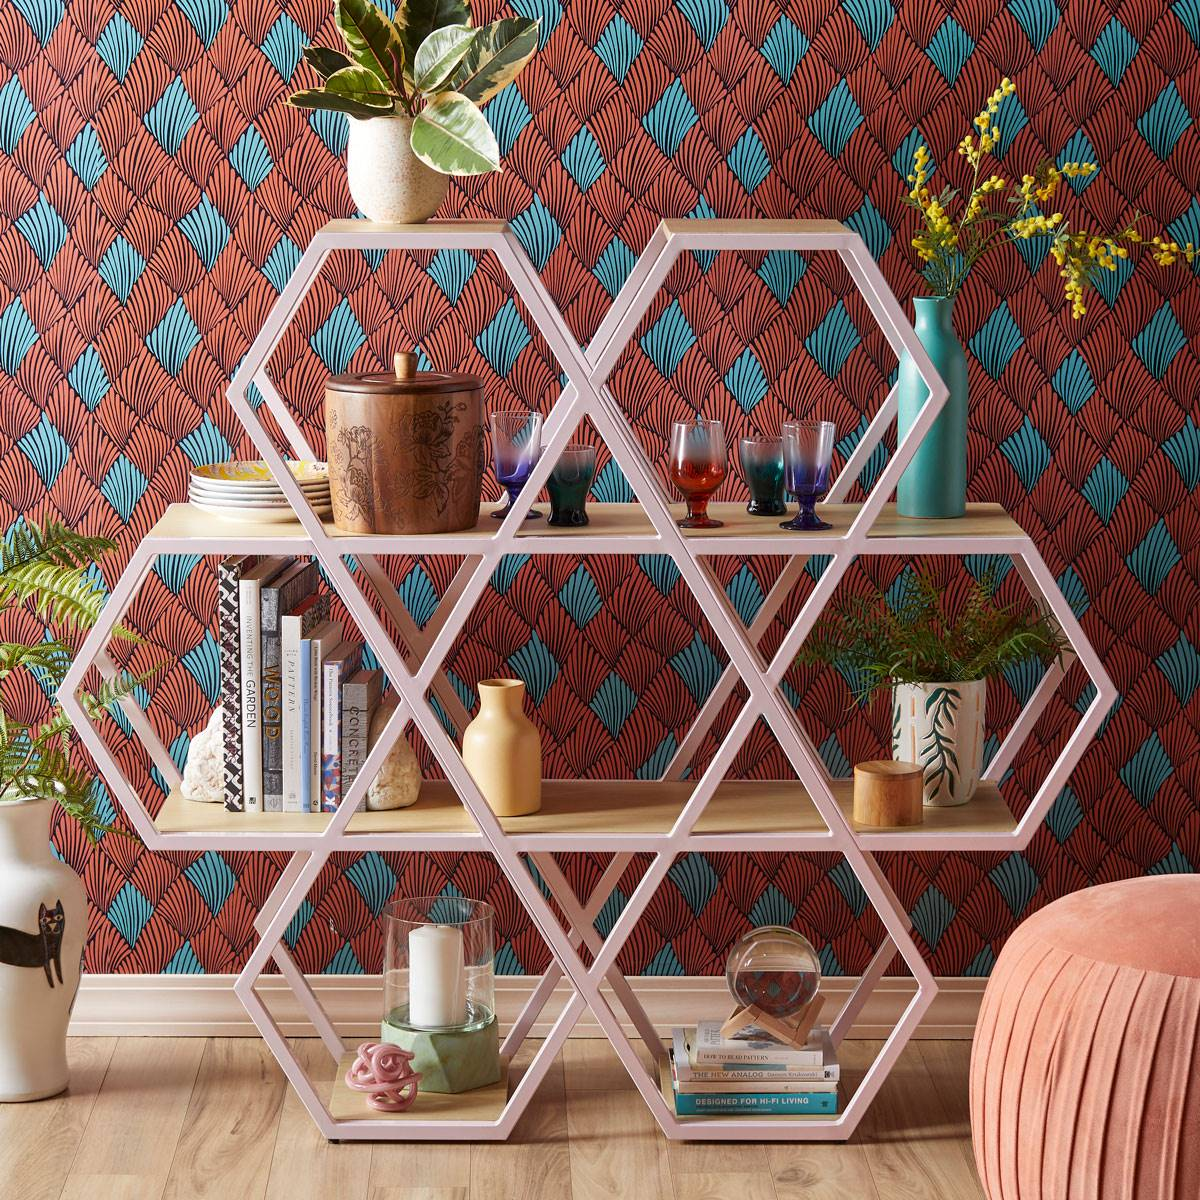 drew-barrymore-decoración-bookshelf. Una estantería hexagonal